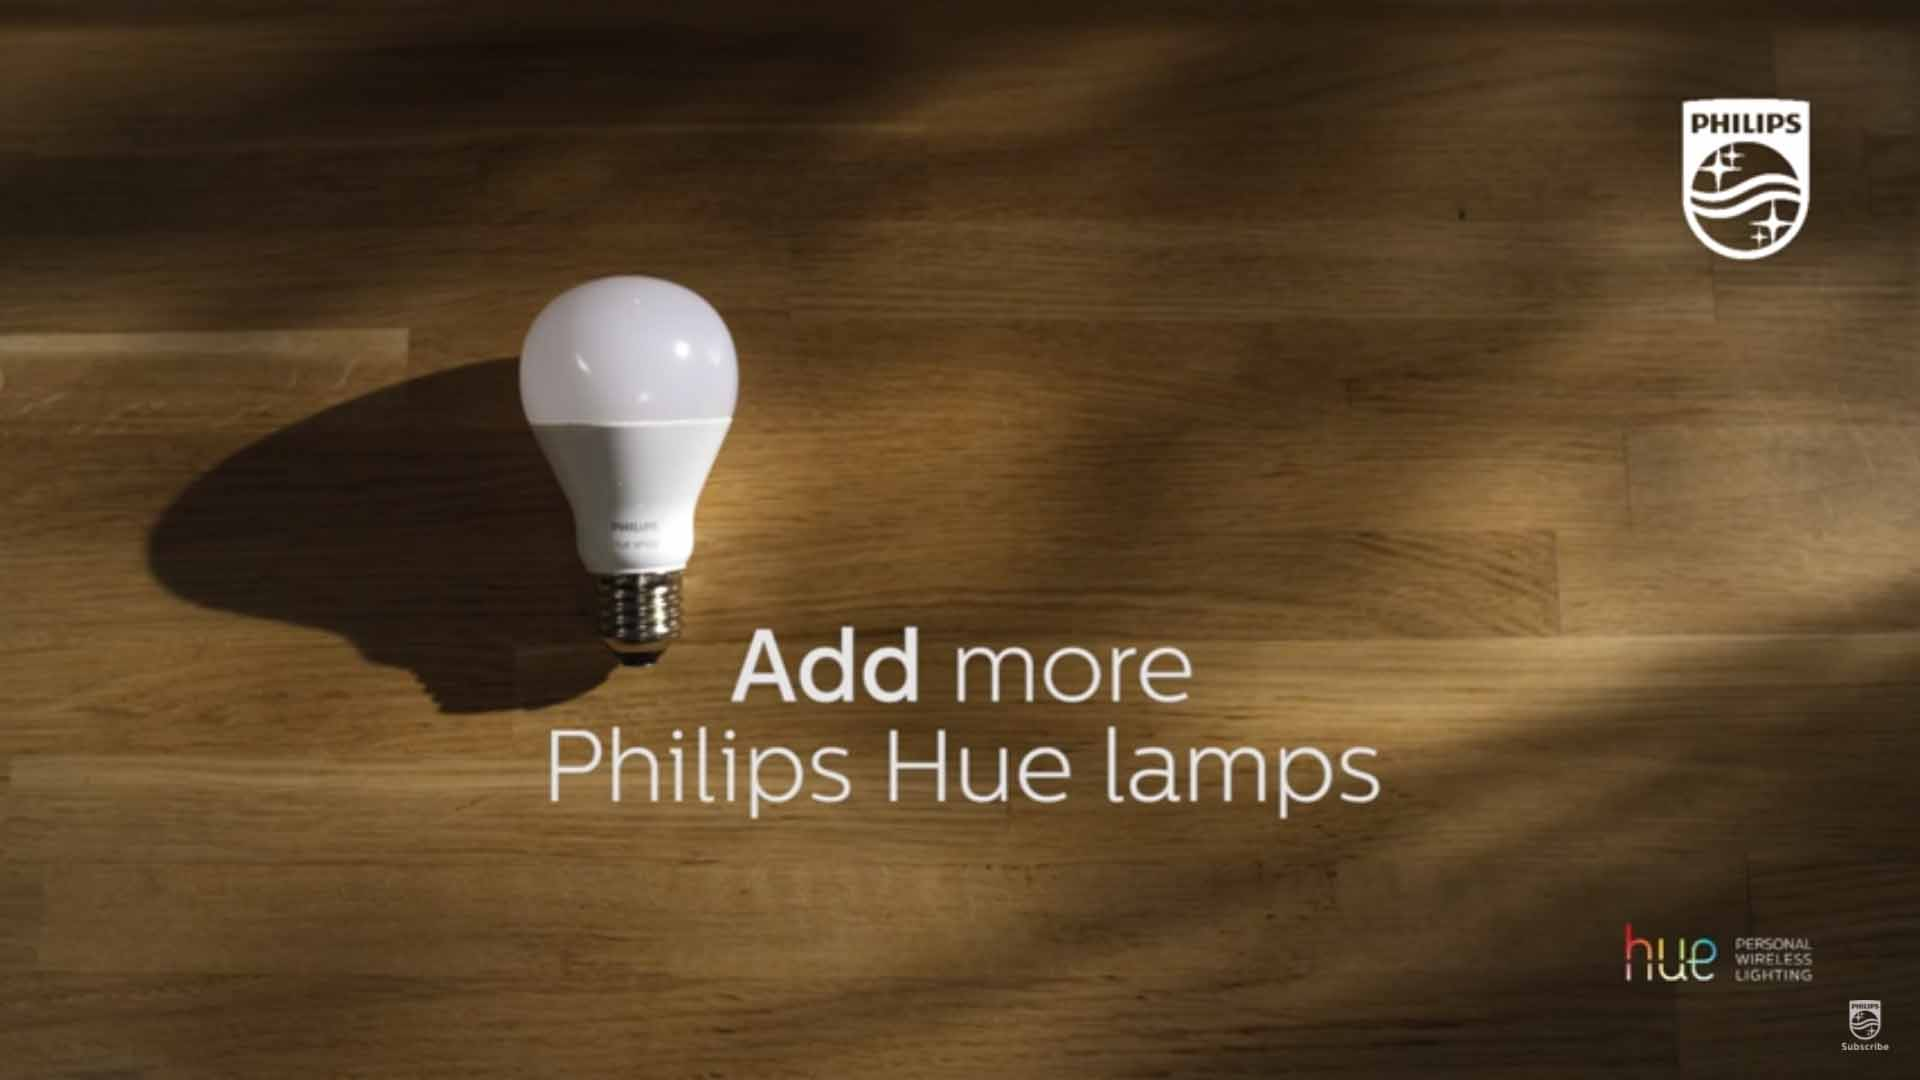 Philips Hue add more lamps to your dimmer video